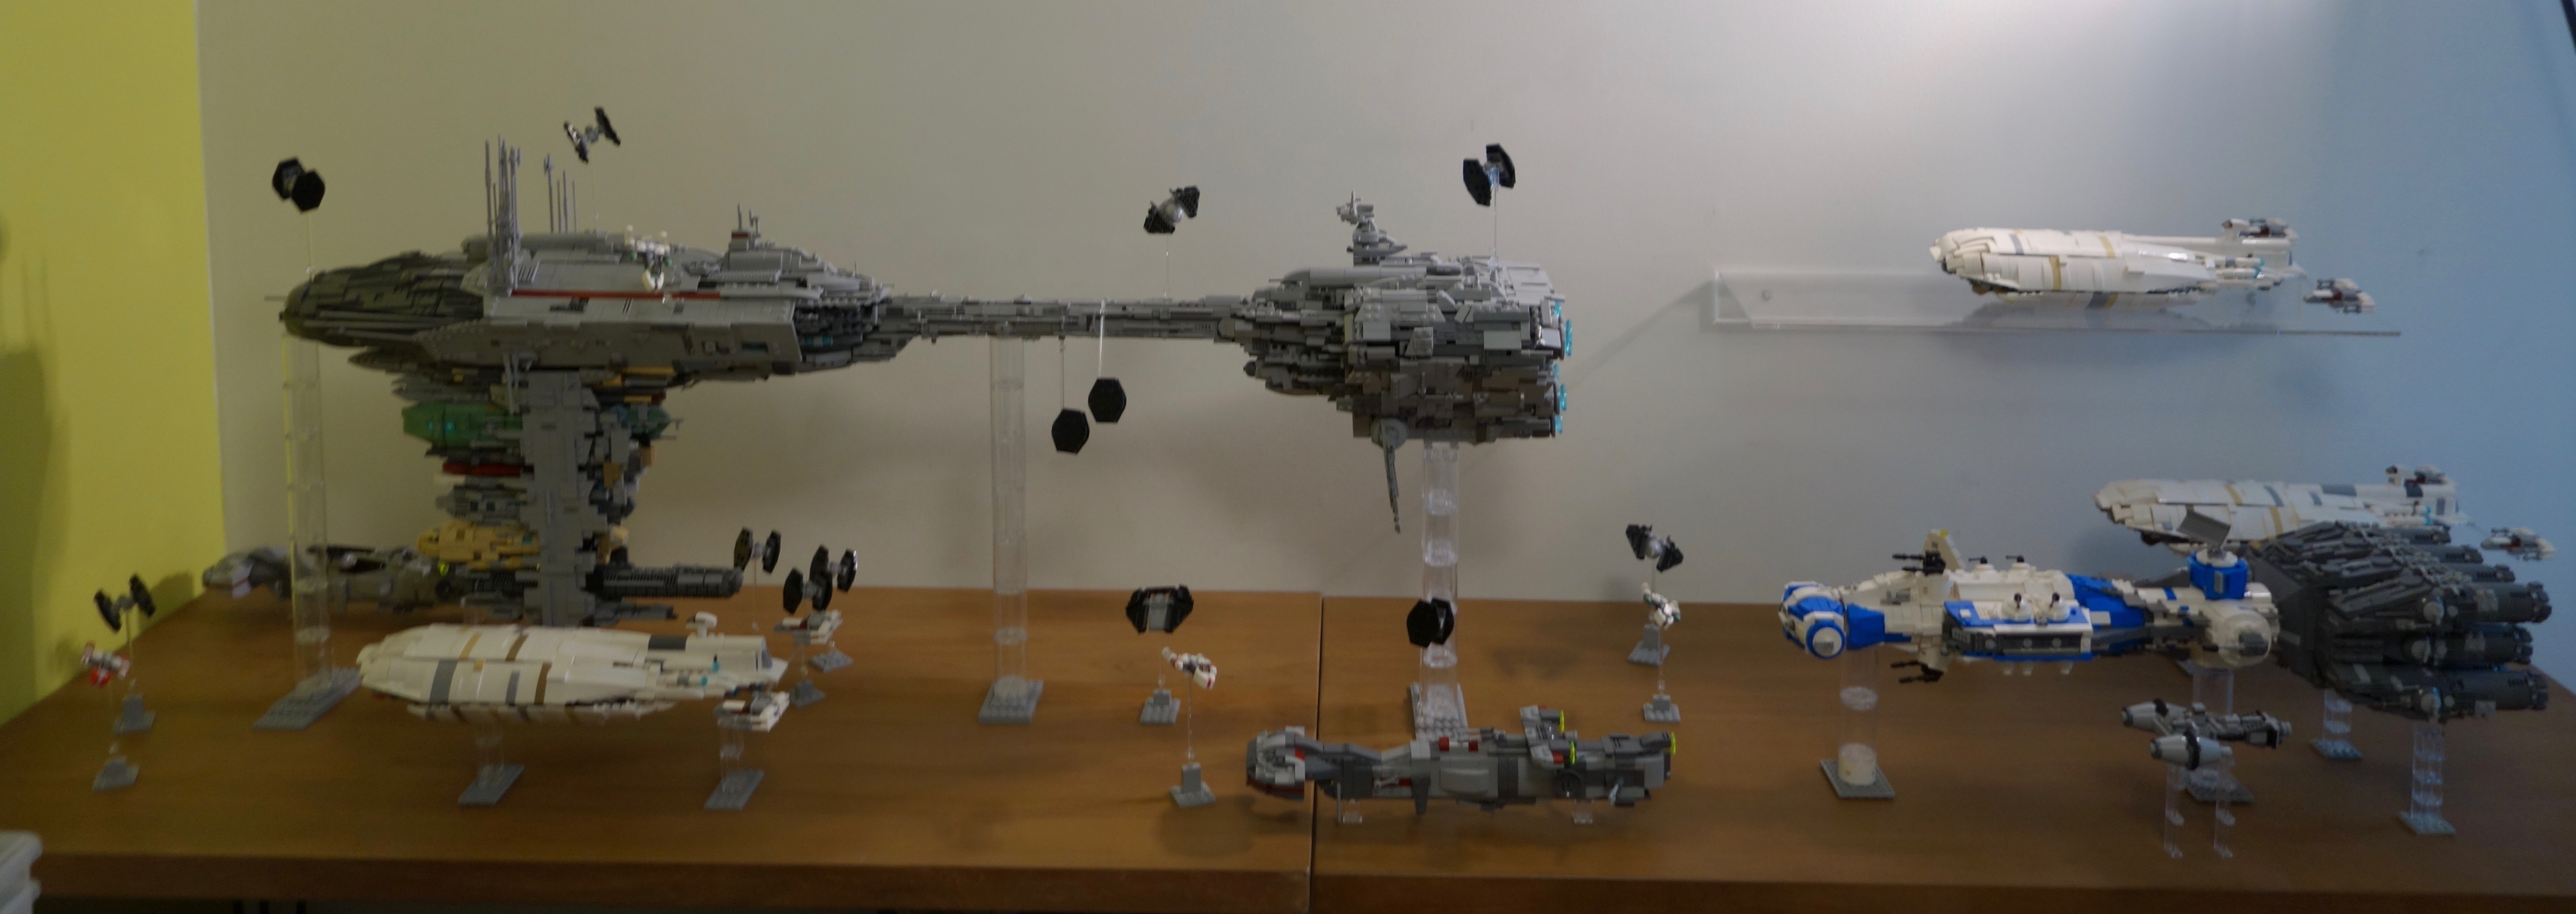 http://www.brickshelf.com/gallery/Ekae/Star-Wars-Ships/my-fleet/dsc01085.jpeg